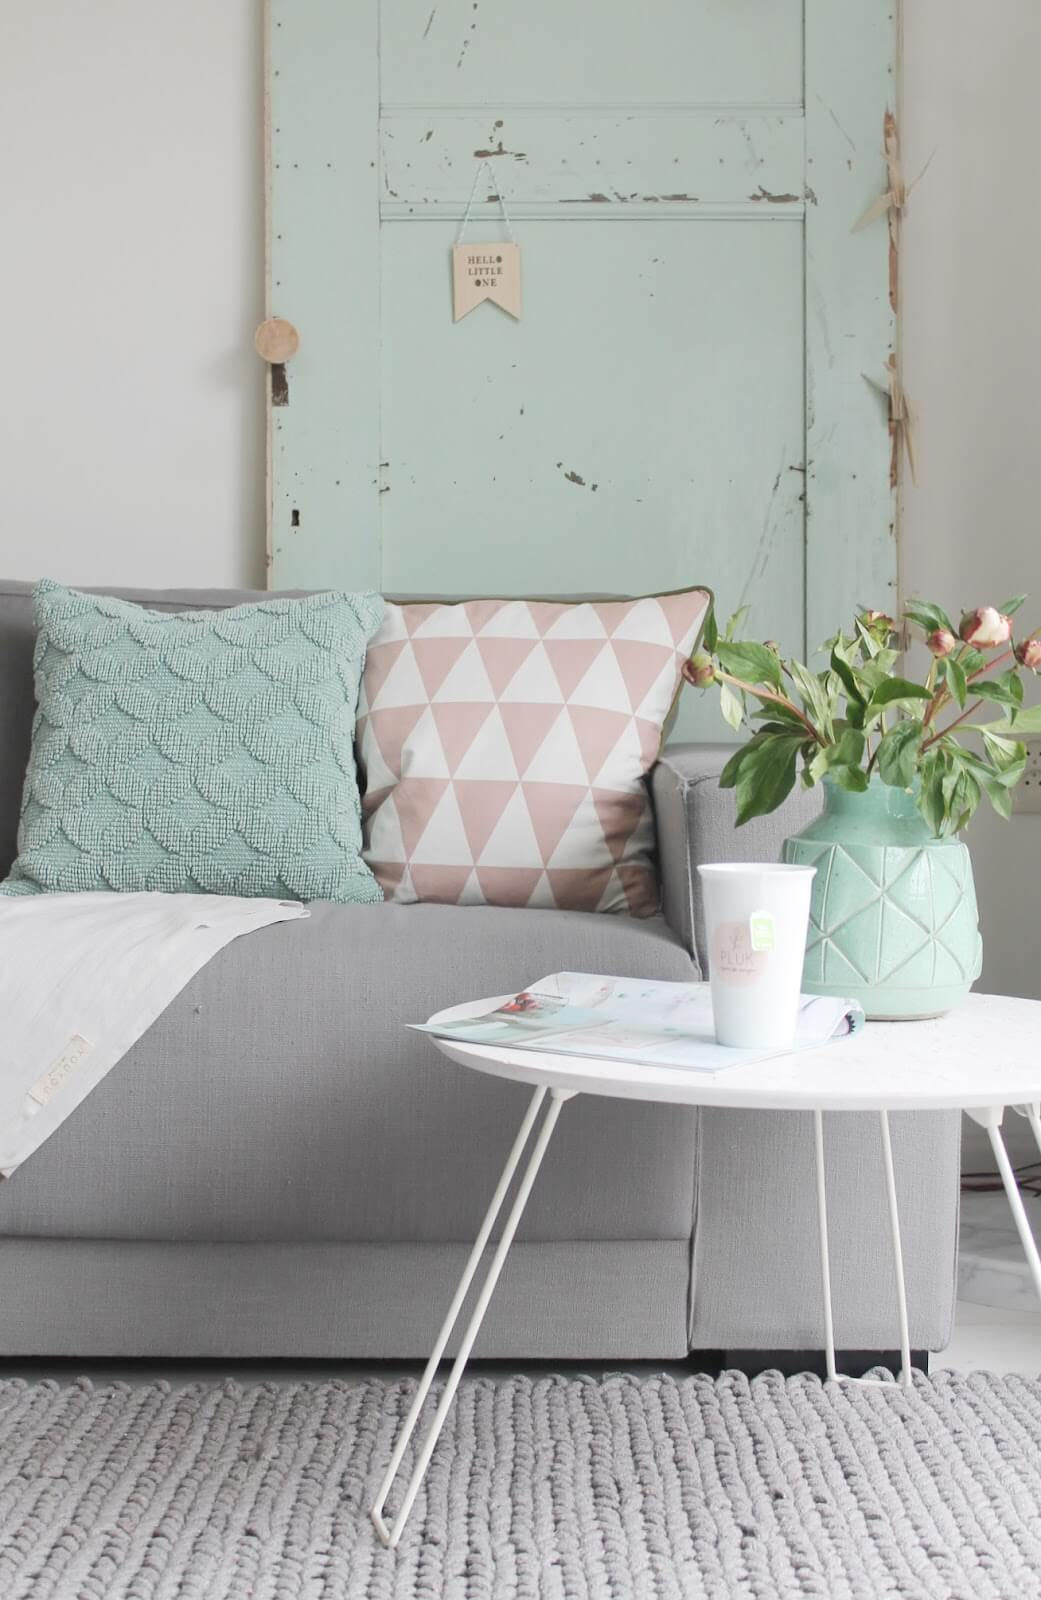 Pillows and Vases are Easy Ways to Add Blue Highlights